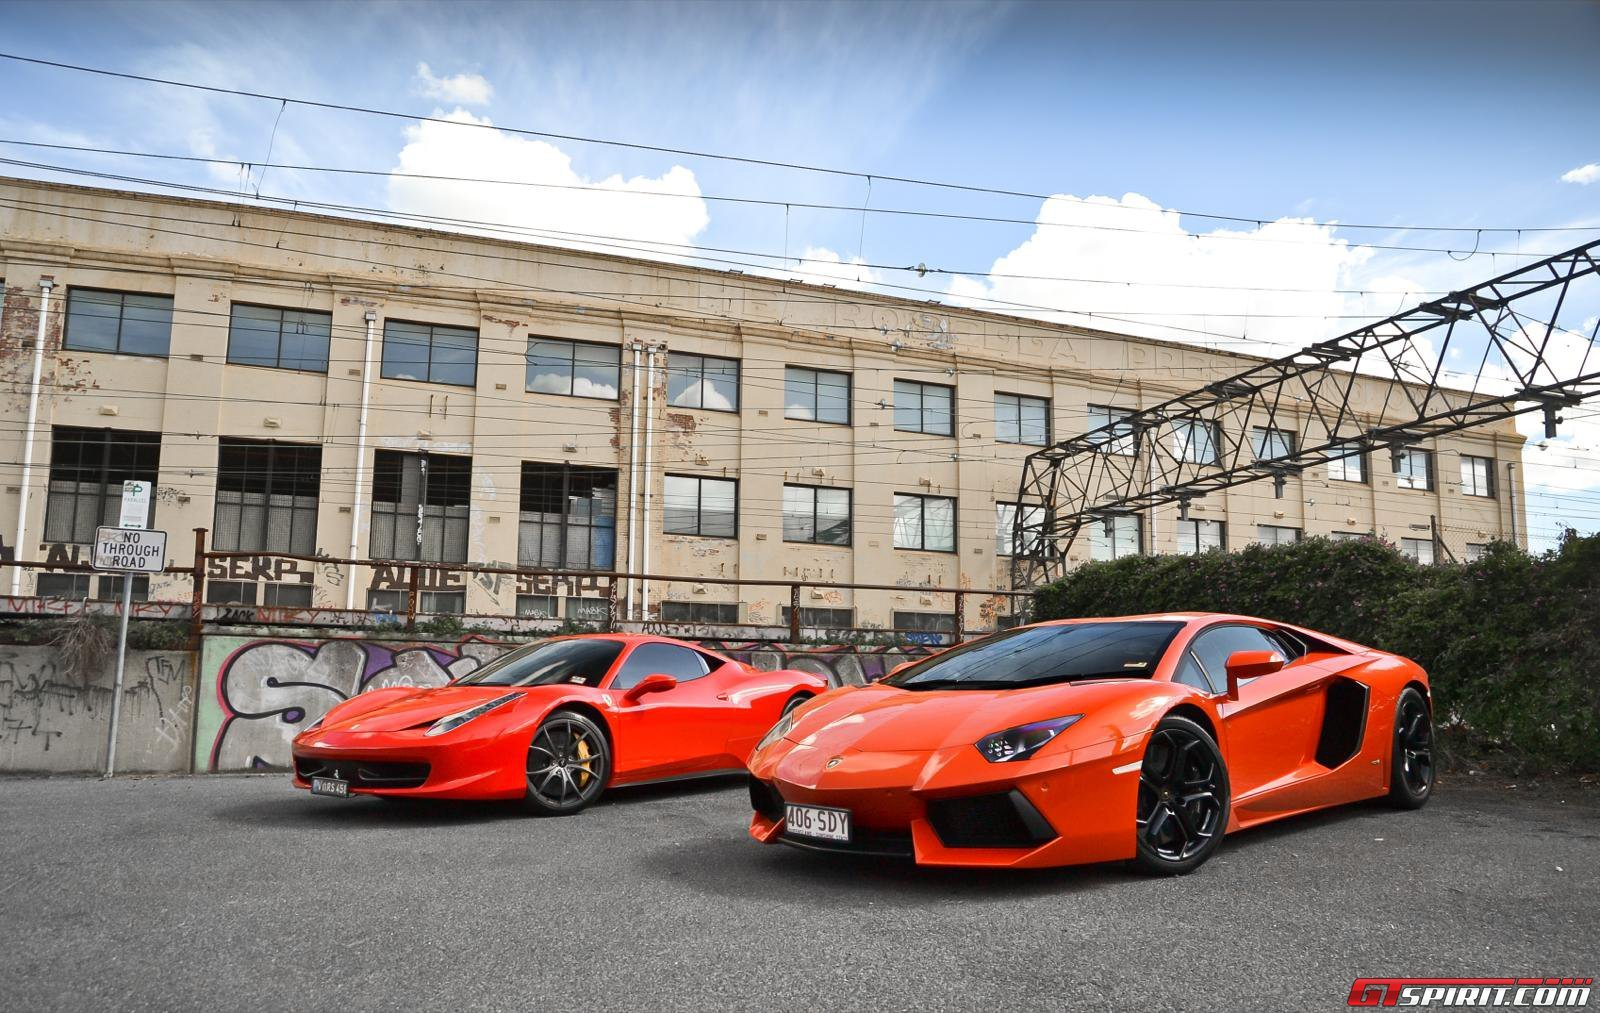 ferrari 458 italia vs lamborghini aventator taringa. Black Bedroom Furniture Sets. Home Design Ideas